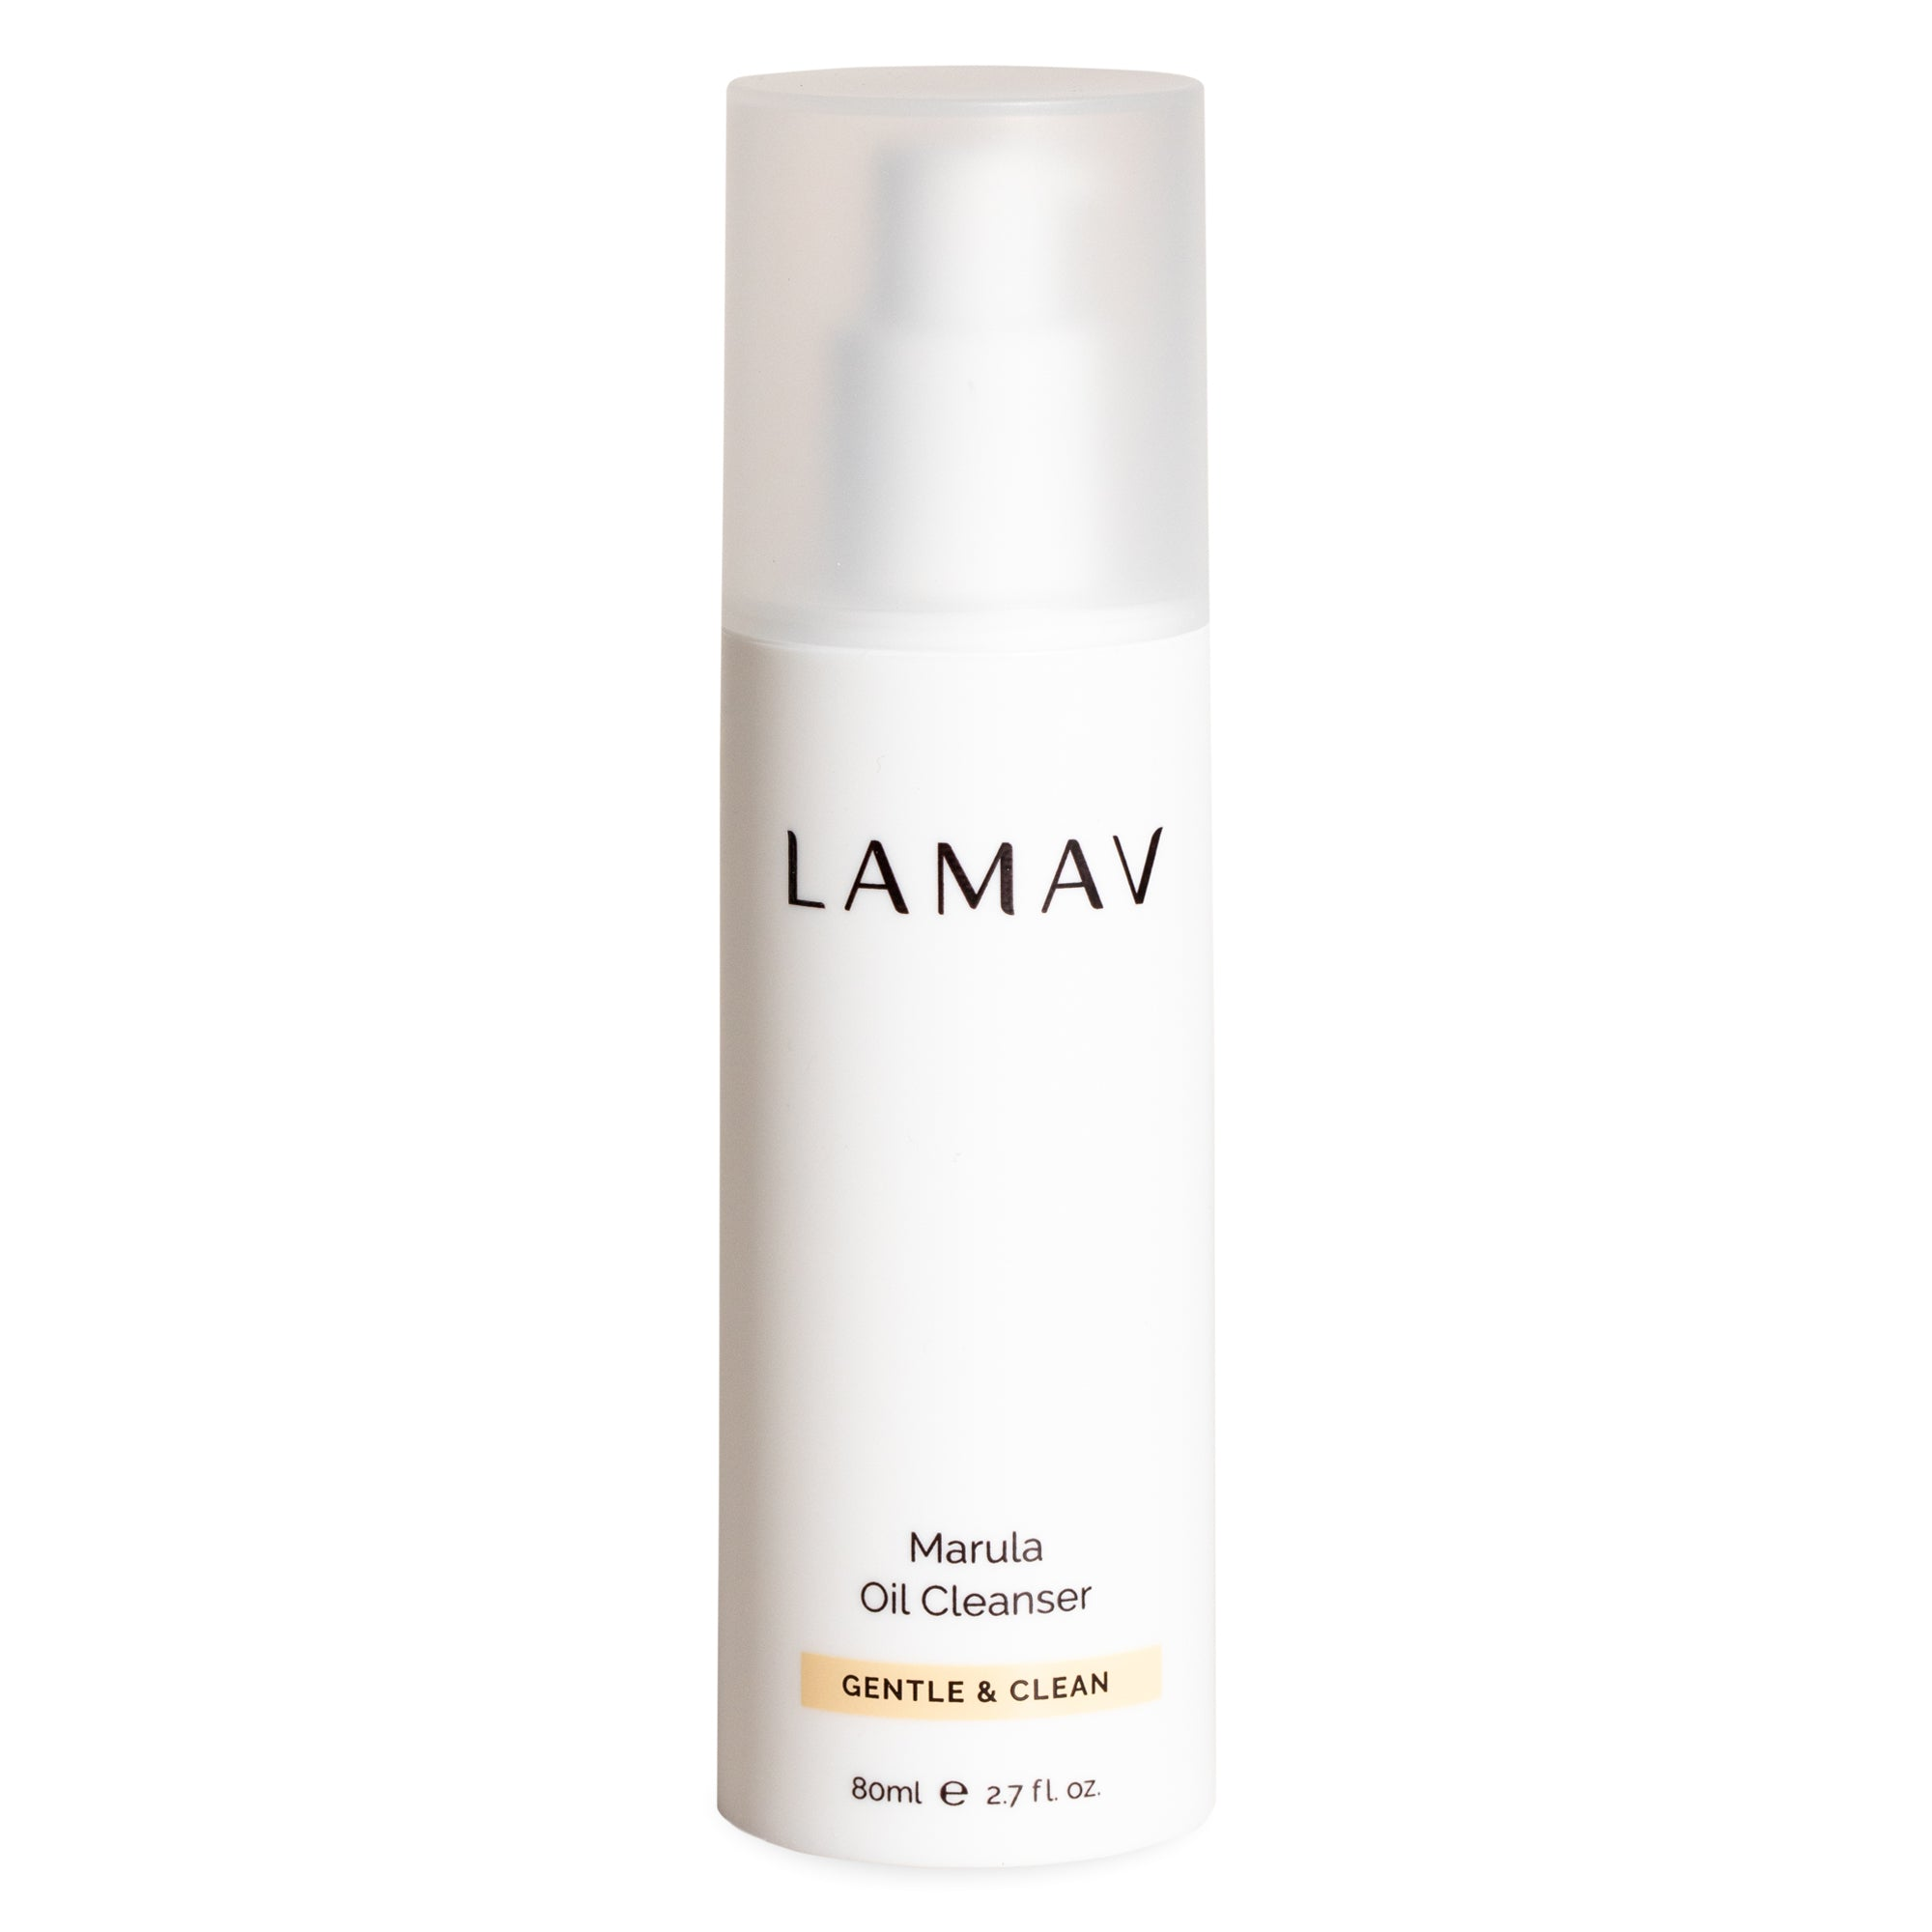 LaMav Marula Oil Cleanser. A purifying blend of natural oils that cleanses the skin and gently dissolves makeup and impurities to reveal clear, radiant complexion. Shop now at Skinbase Beauty.